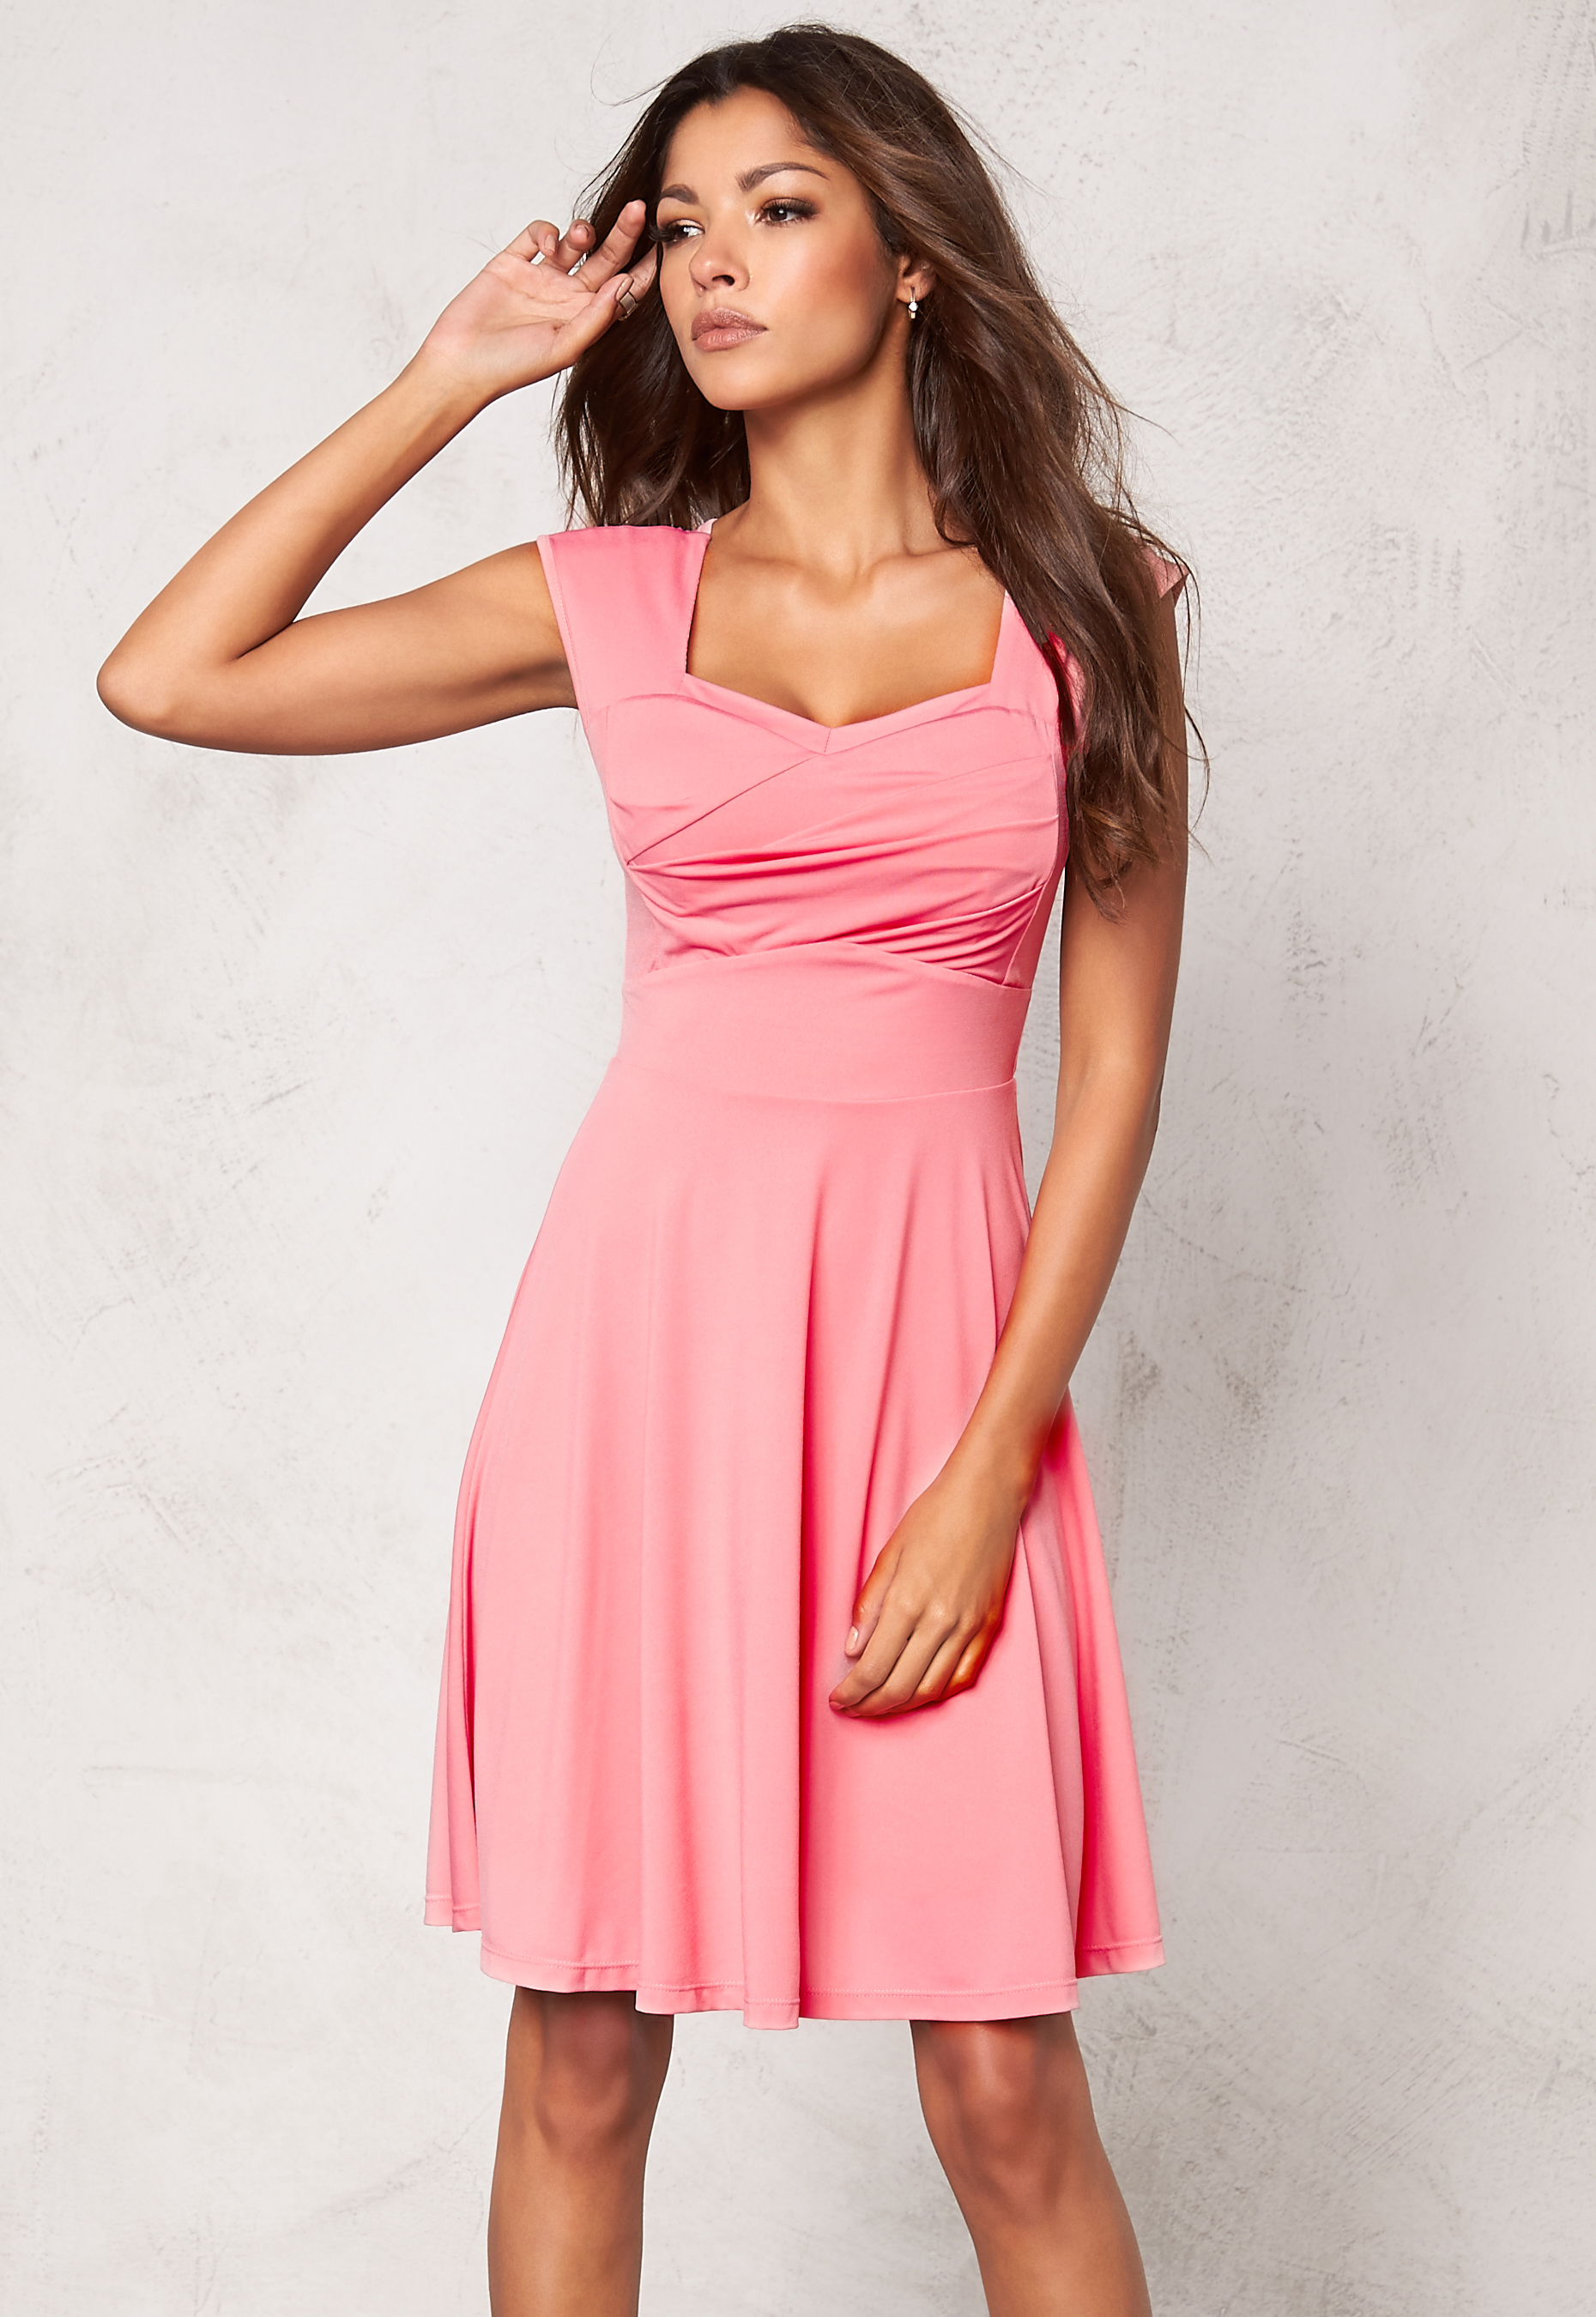 c3a35d3824a0 Chiara Forthi Suelly Dress Light pink - Bubbleroom